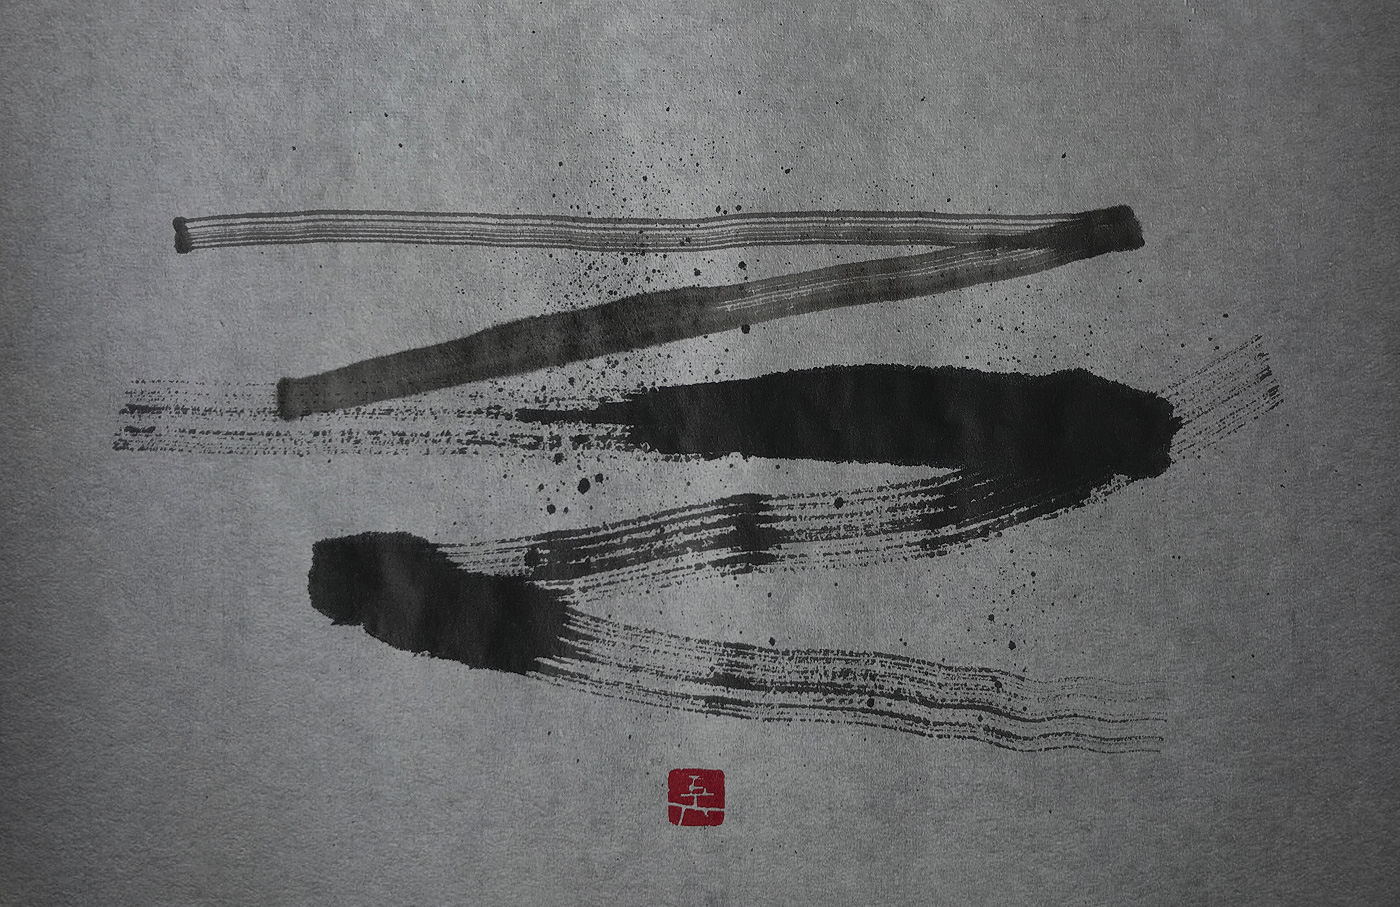 ⋛ 大きいか等しいか小さい greater-than equal to or less-than 書道作品 japaneseart japanesecalligraphy